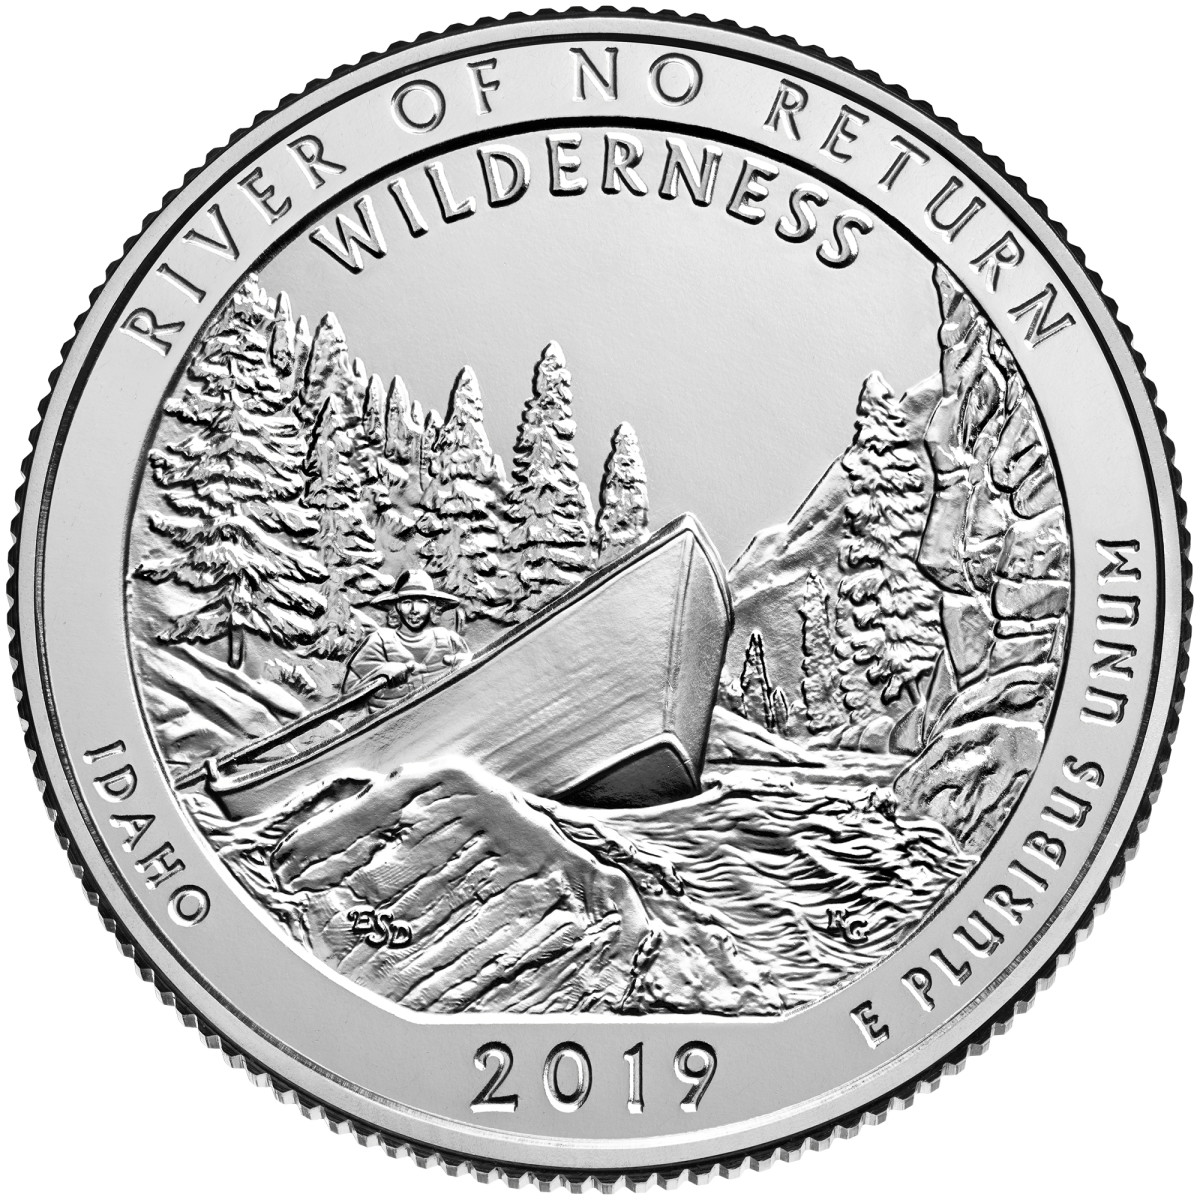 Image courtesy of the U.S. Mint.